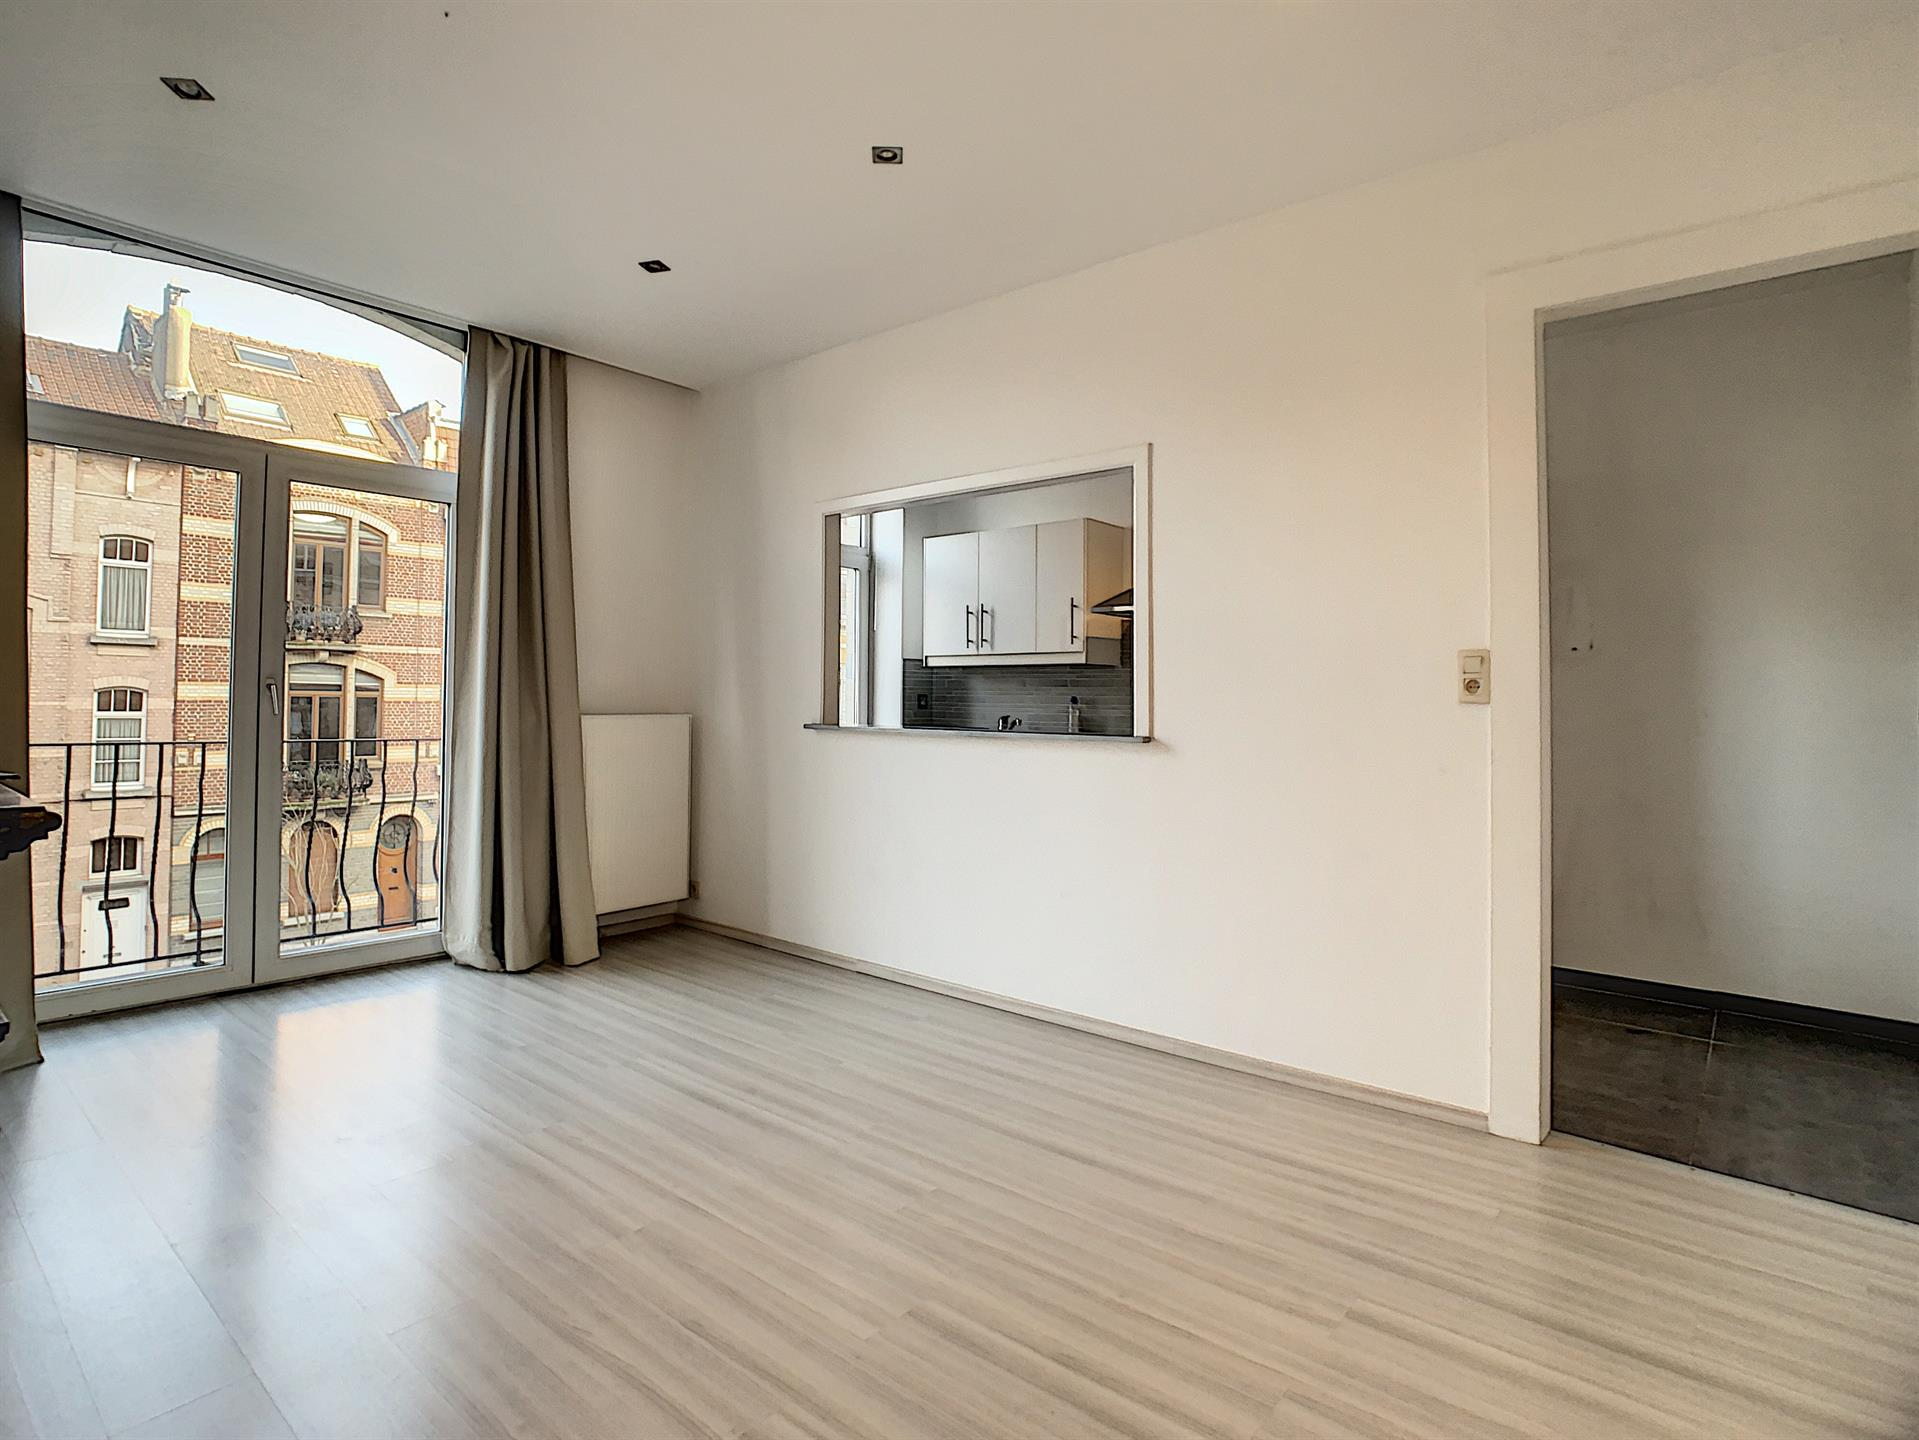 Appartement - Forest - #4274397-4